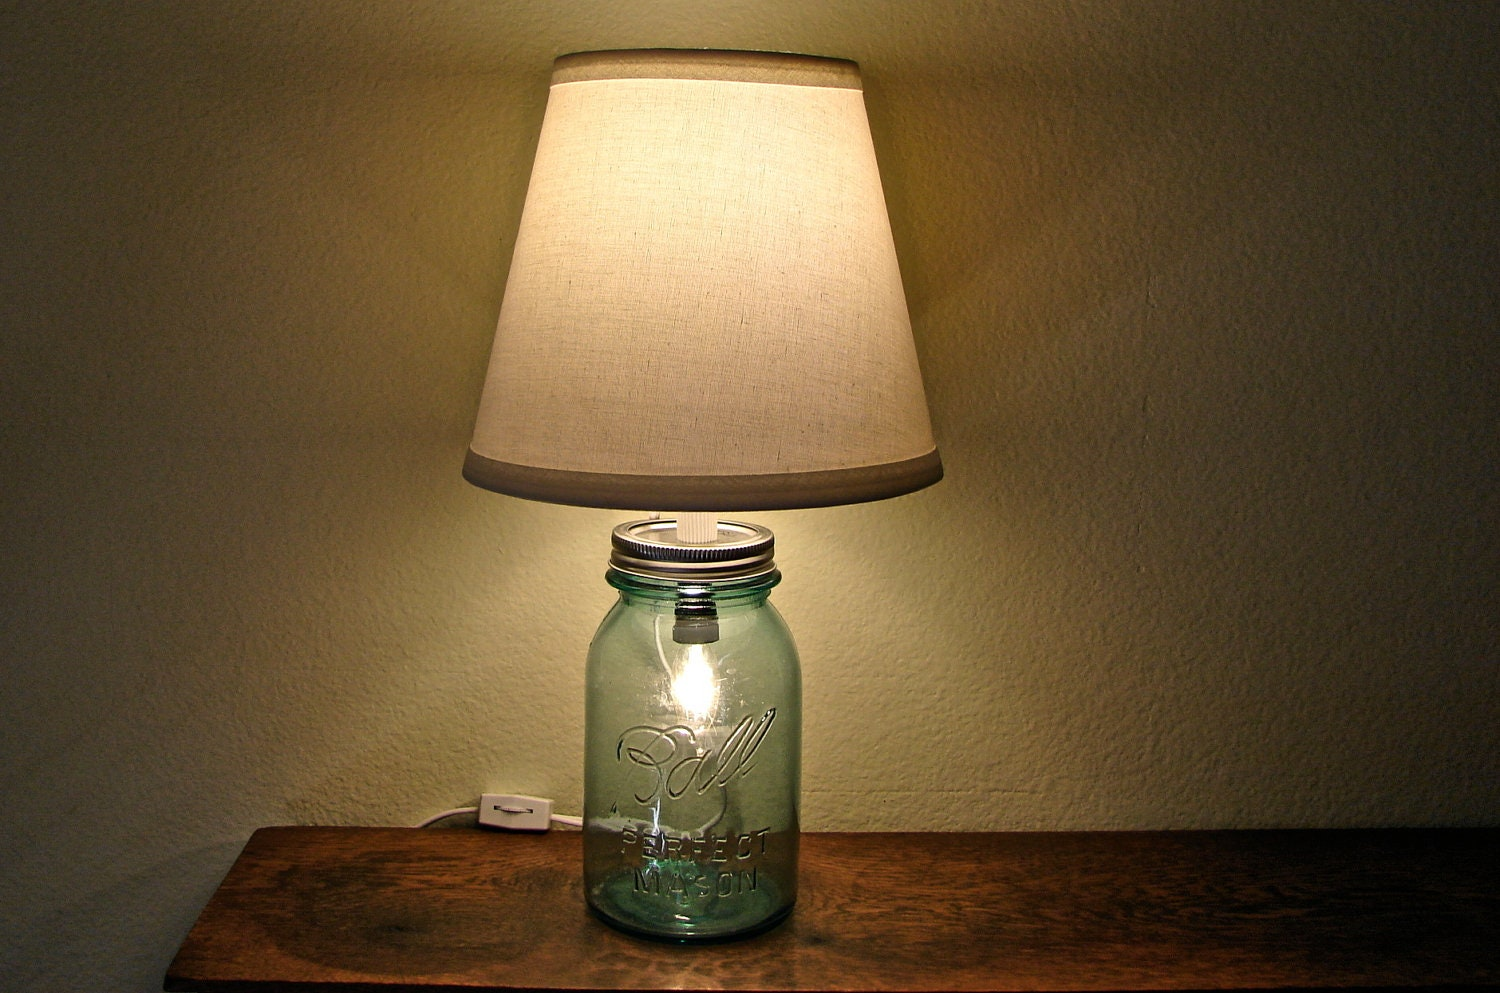 Antique bedside table lamps - Discount Vintage Blue Mason Jar Table Lamp No Shade Two Bulbs Works As Nightlight Or Lamp